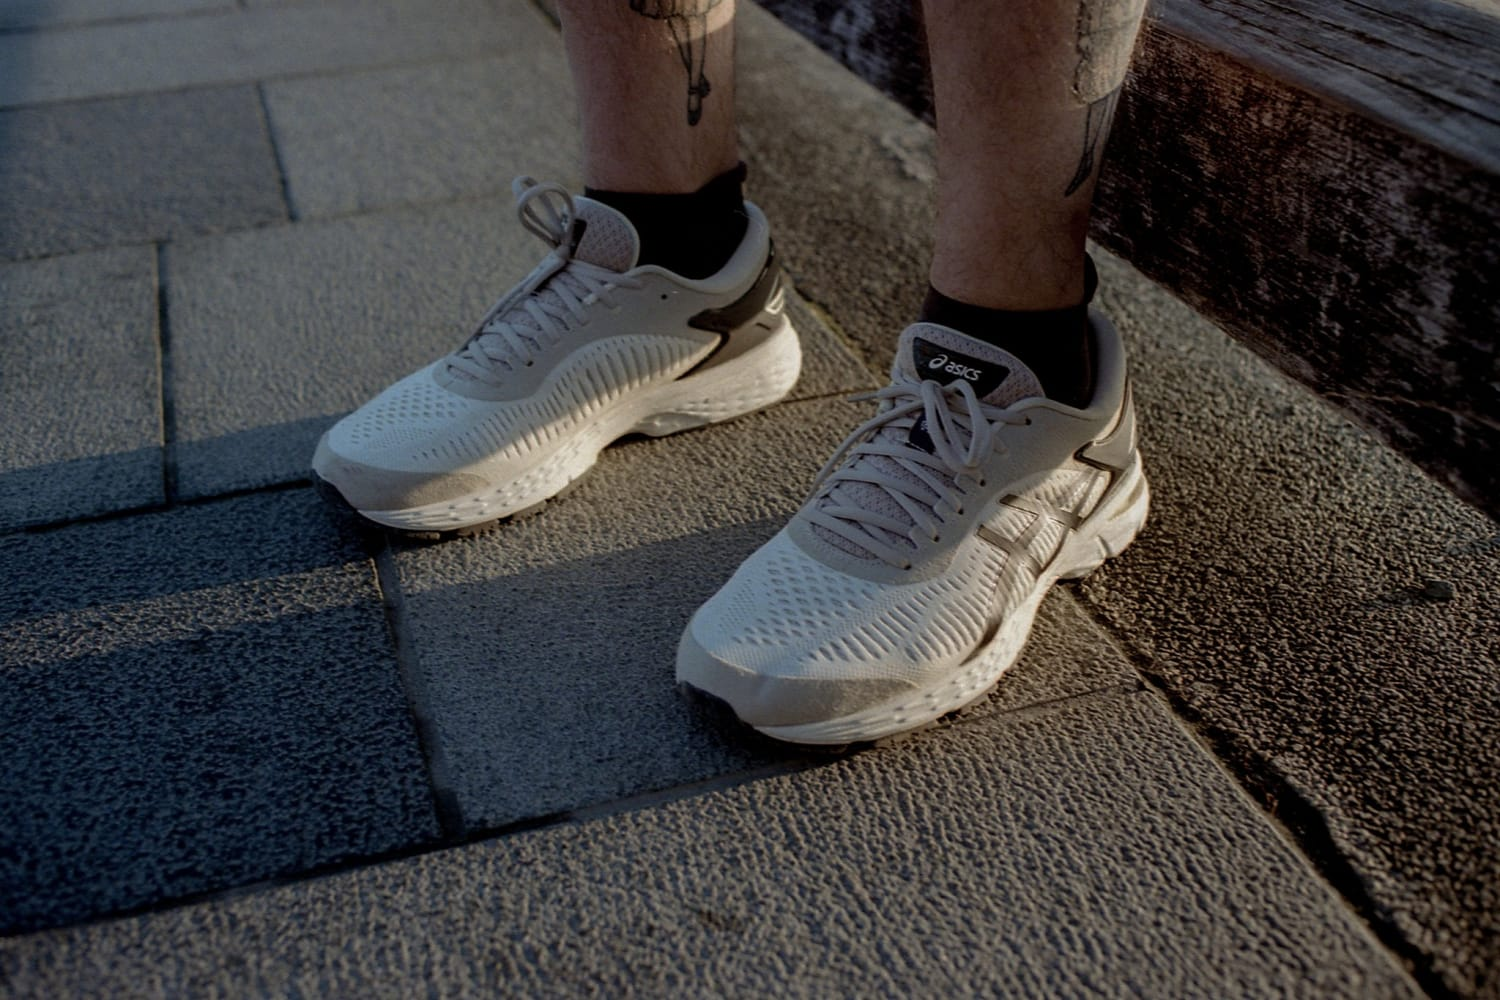 Reigning Champ x ASICS Tiger Kyoto Edition - Footwear and Apparel Collection